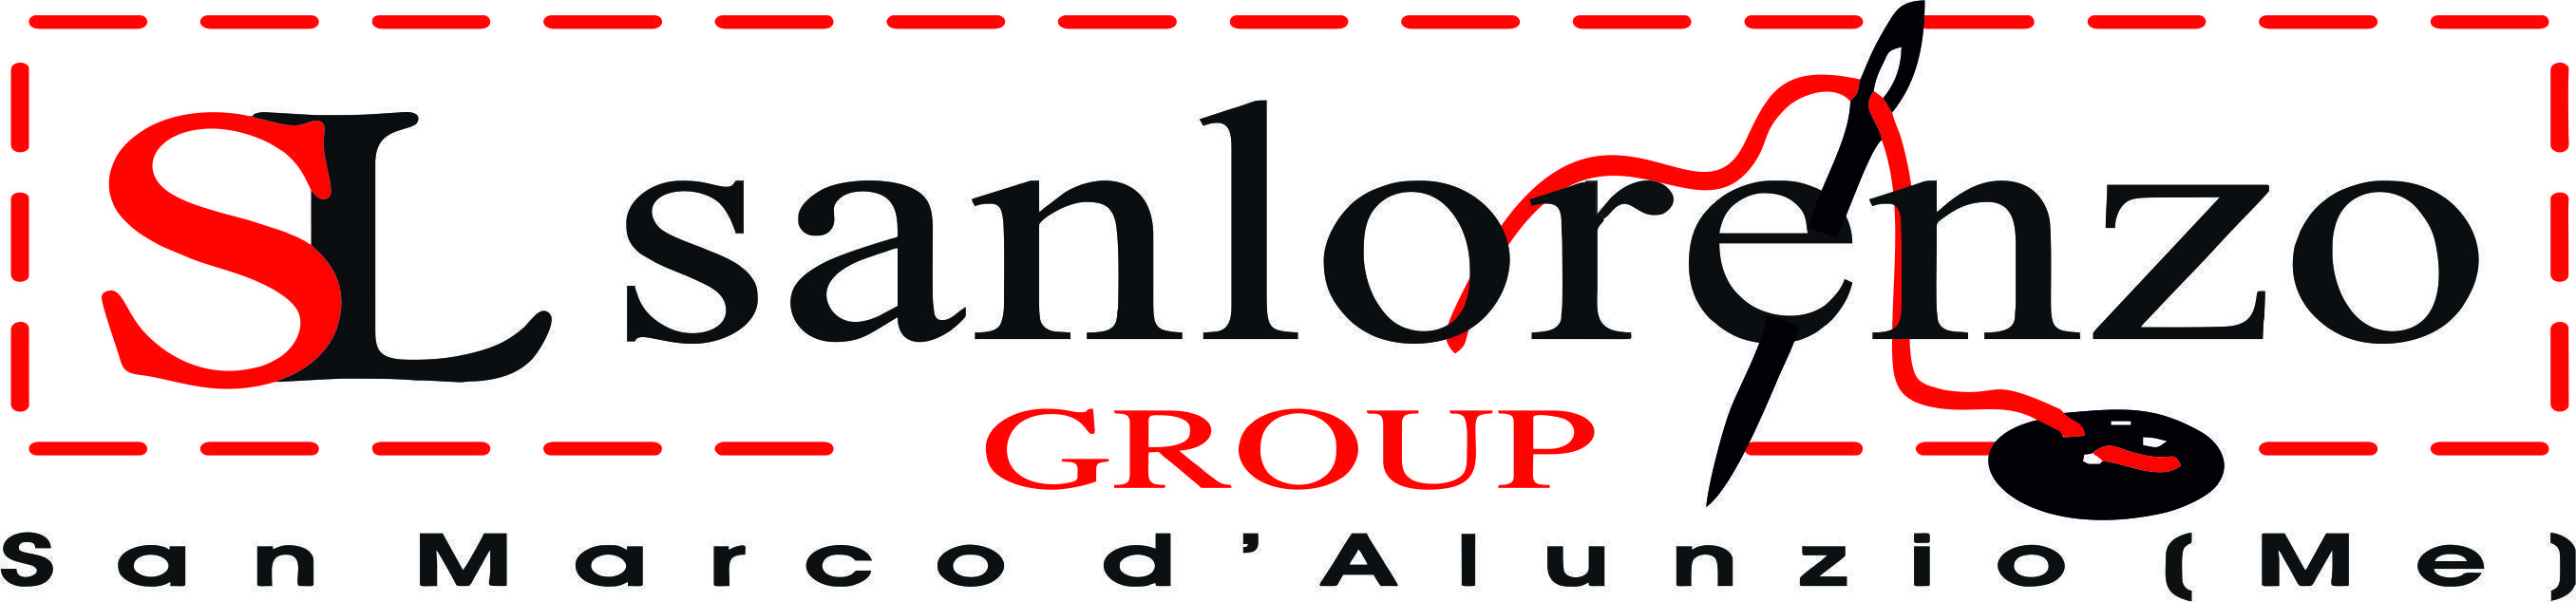 SanLorenzo Group